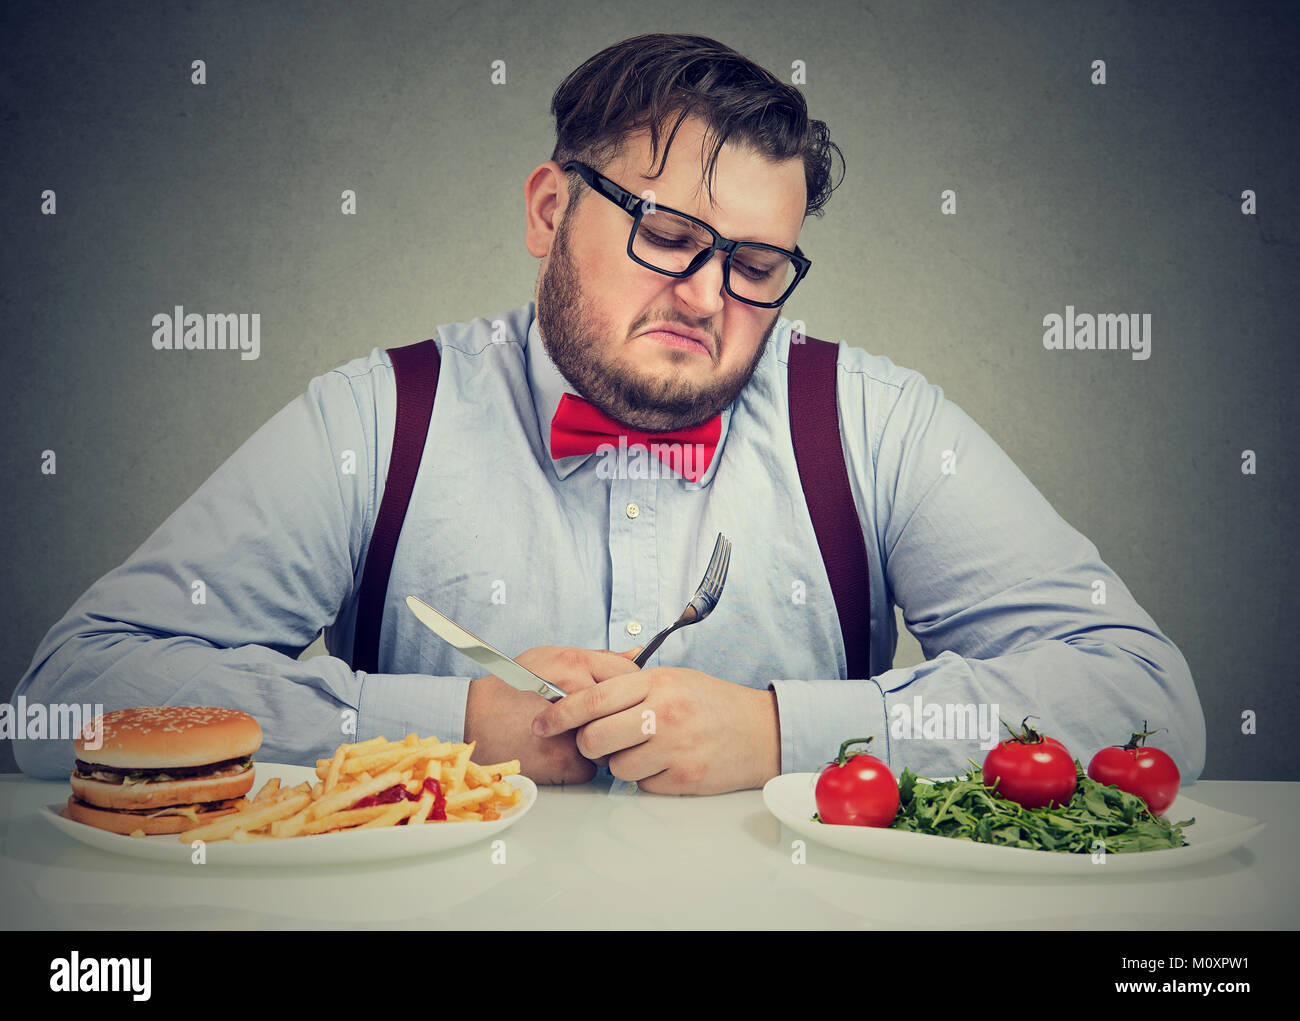 Overweight man in formal outfit looking at salad†with hate while craving juice hamburger. - Stock Image